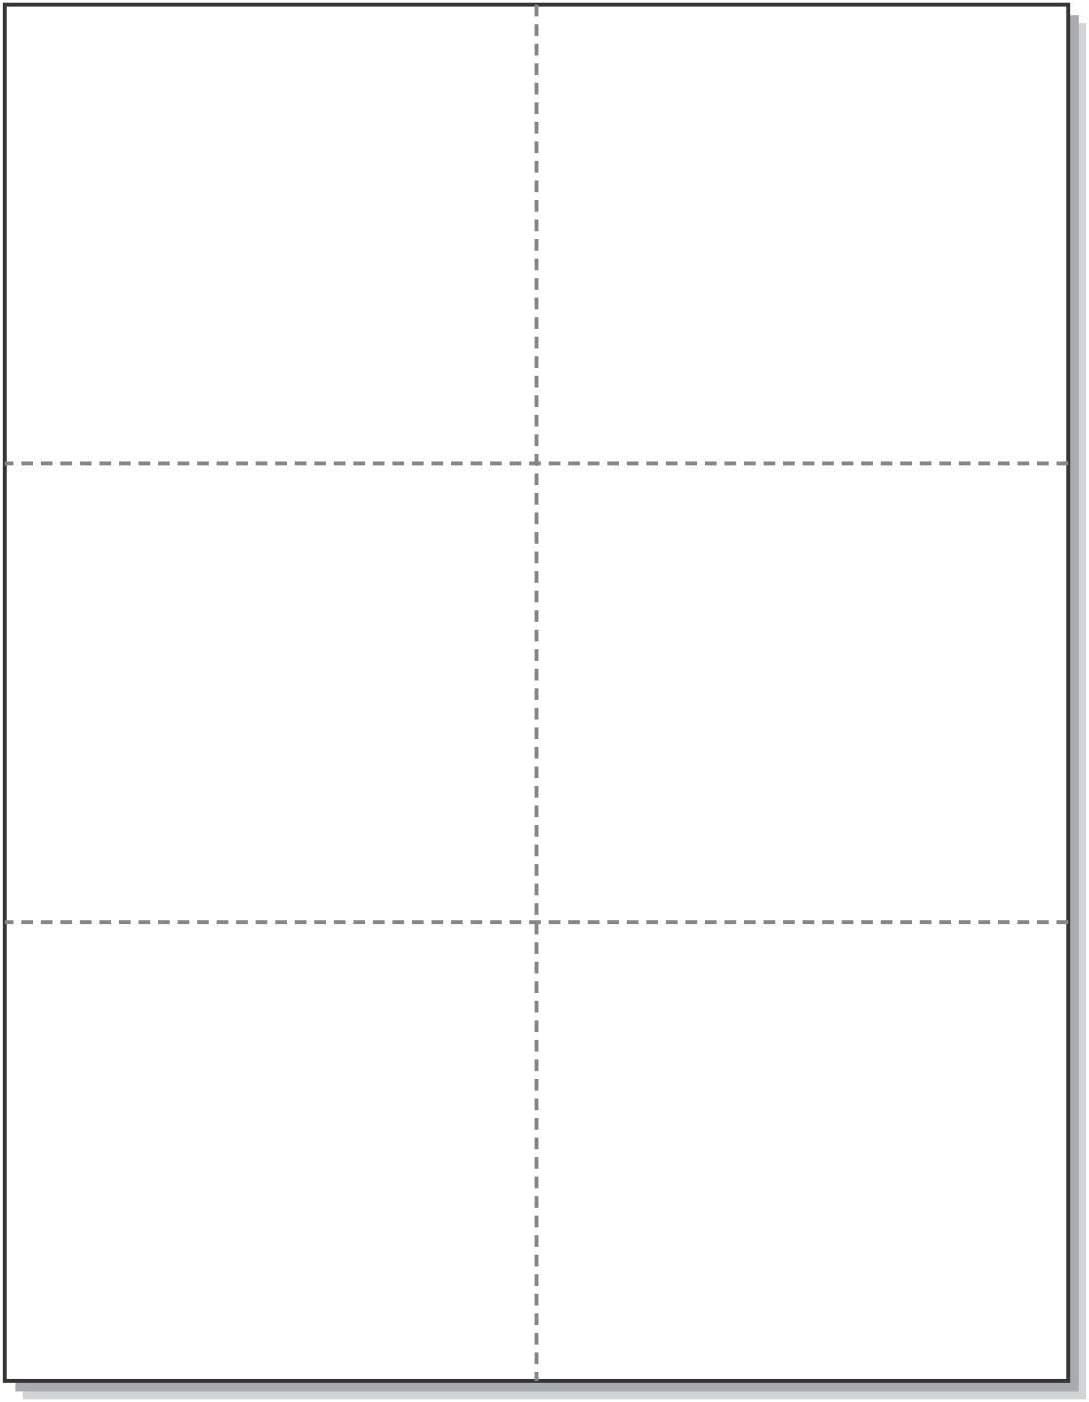 Laser Printer Blank Perforated Cards 6 up per Page, for School Registration Cards, Flower Delivery Cards, Inventory Tags, Wedding Response Cards, RSVP Cards, Trip Tickets, ETC. (300 White Cards): Office Products